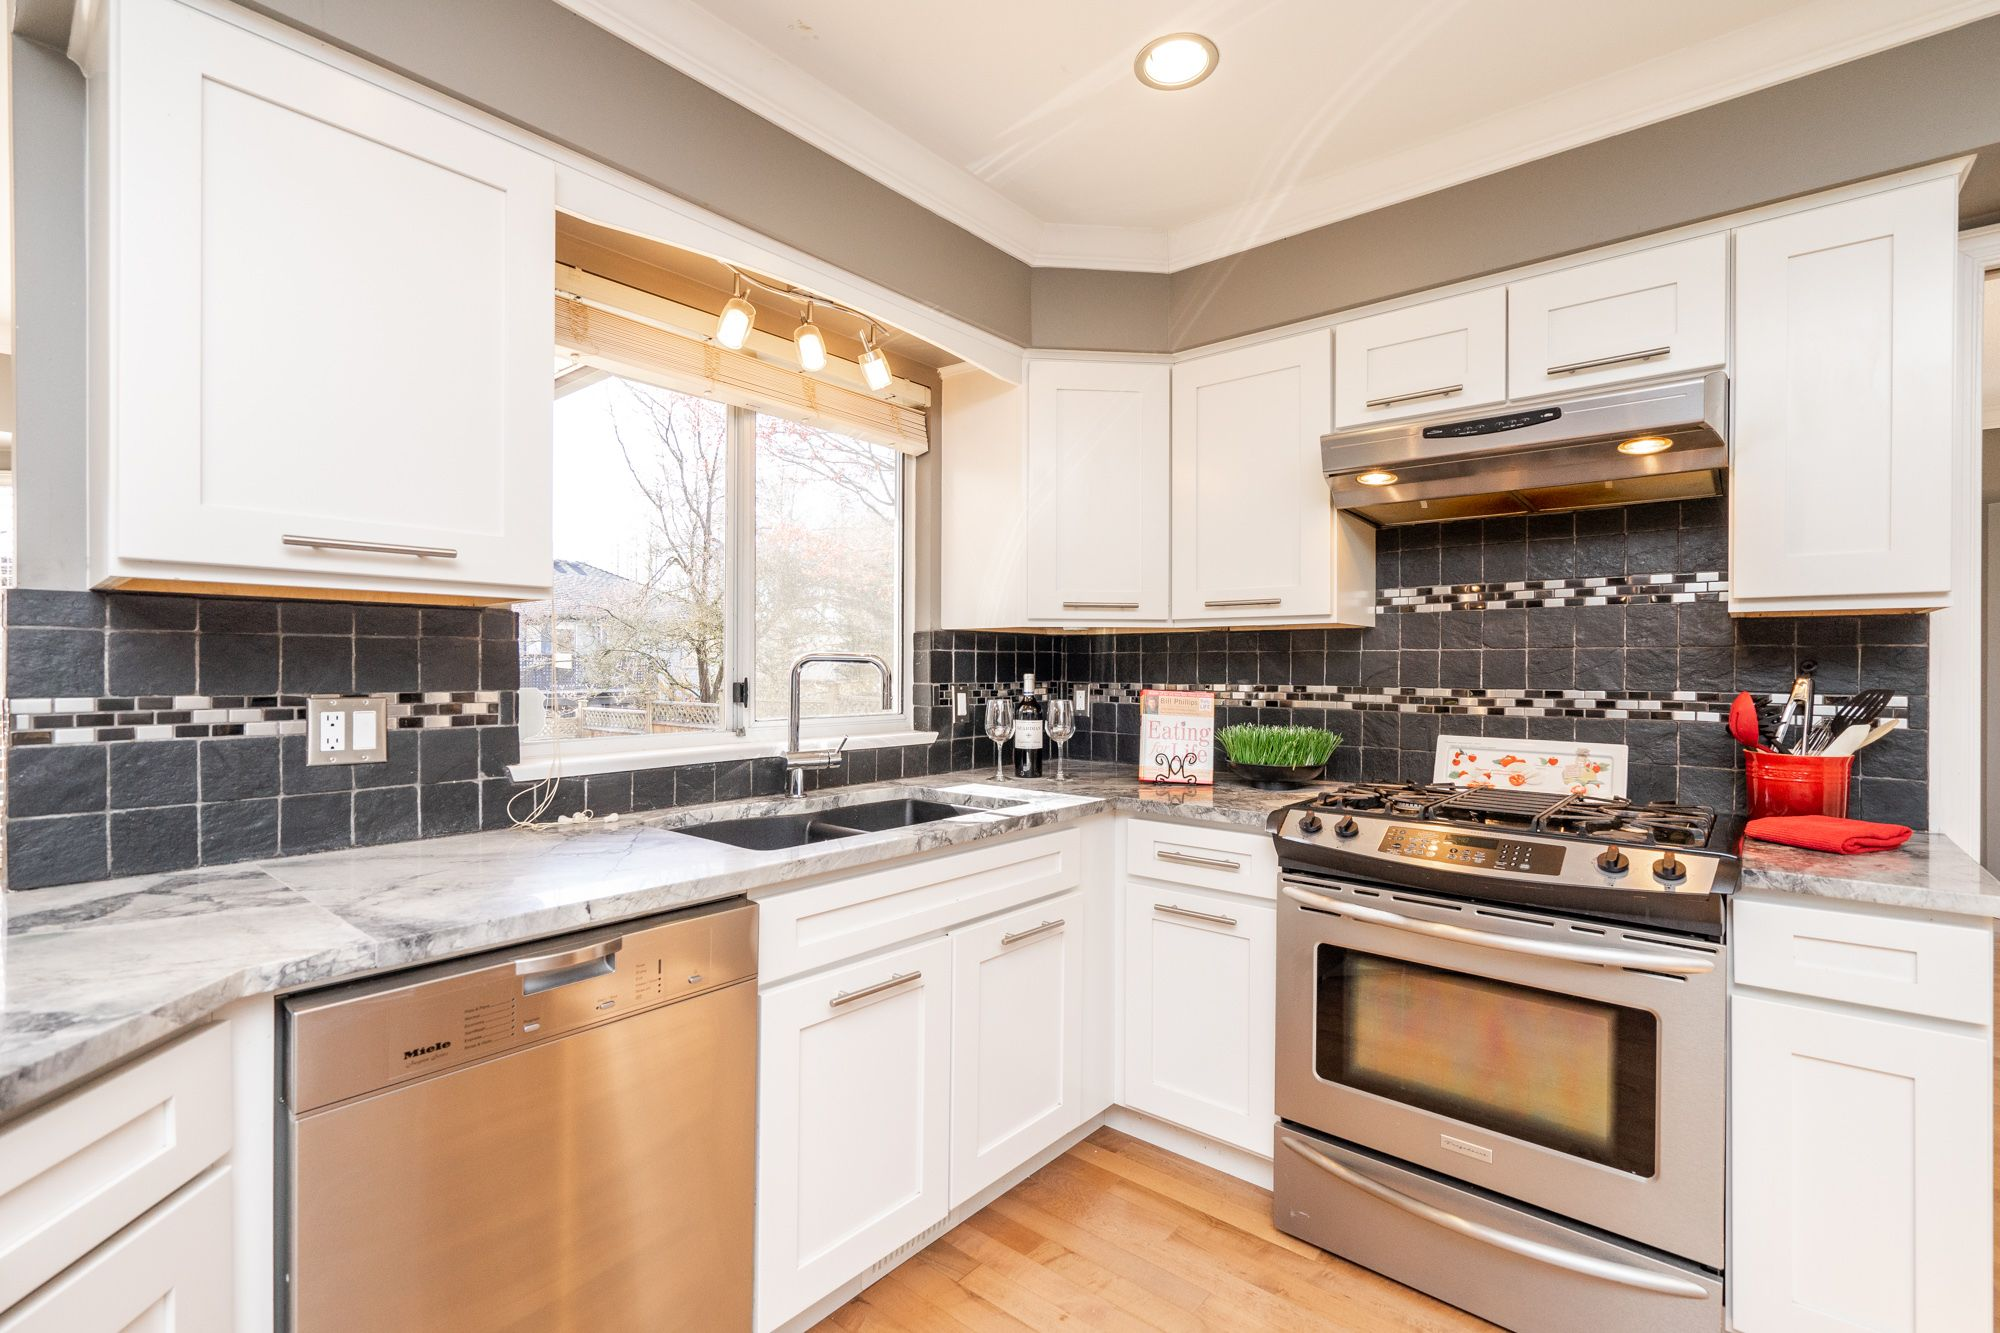 """Photo 6: Photos: 8448 213 Street in Langley: Walnut Grove House for sale in """"Forest Hills"""" : MLS®# R2259409"""